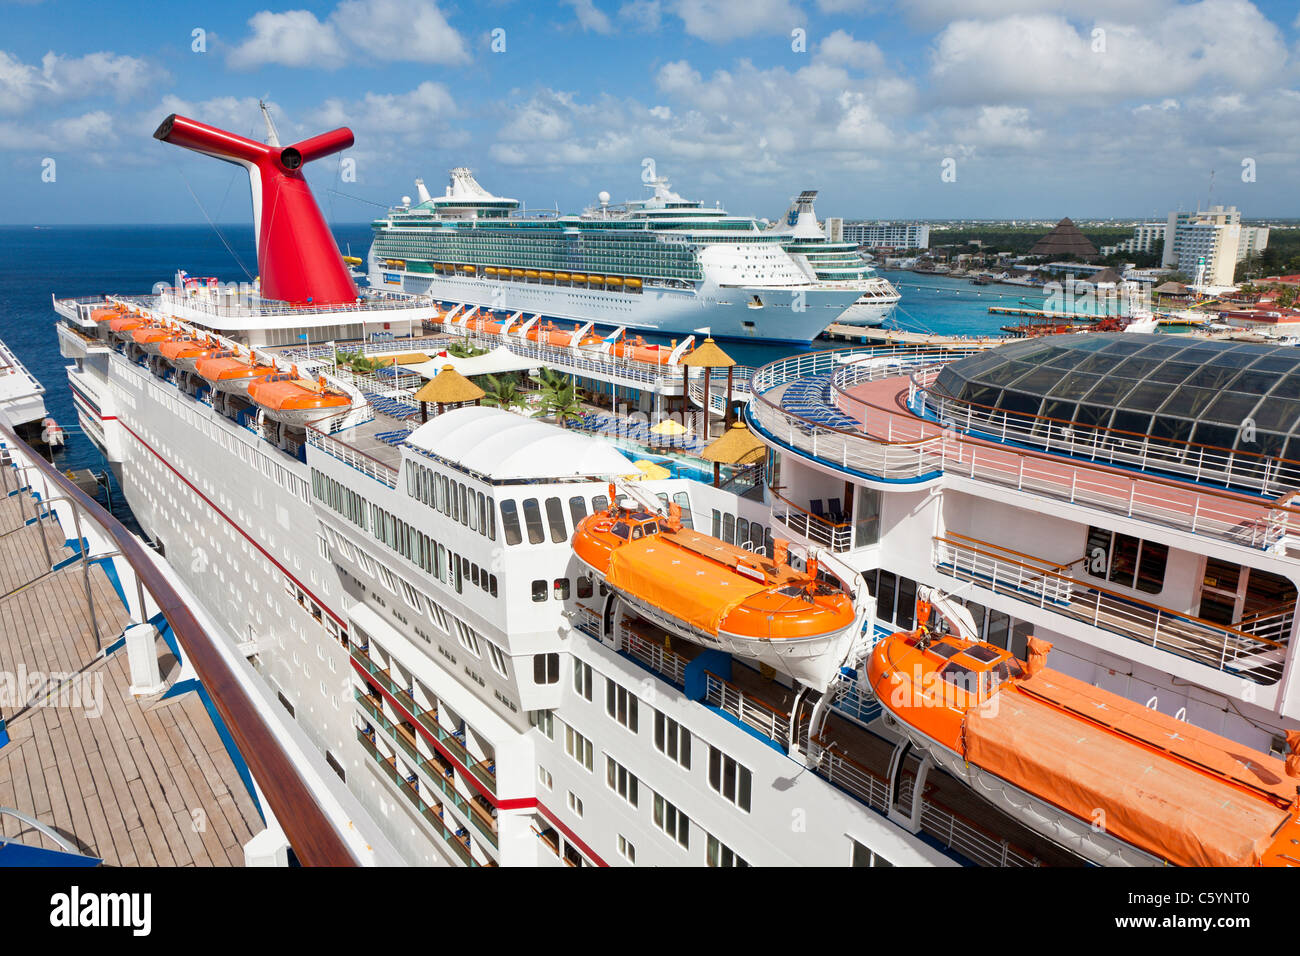 carnival ecstasy and two royal caribbean cruise ships at port in